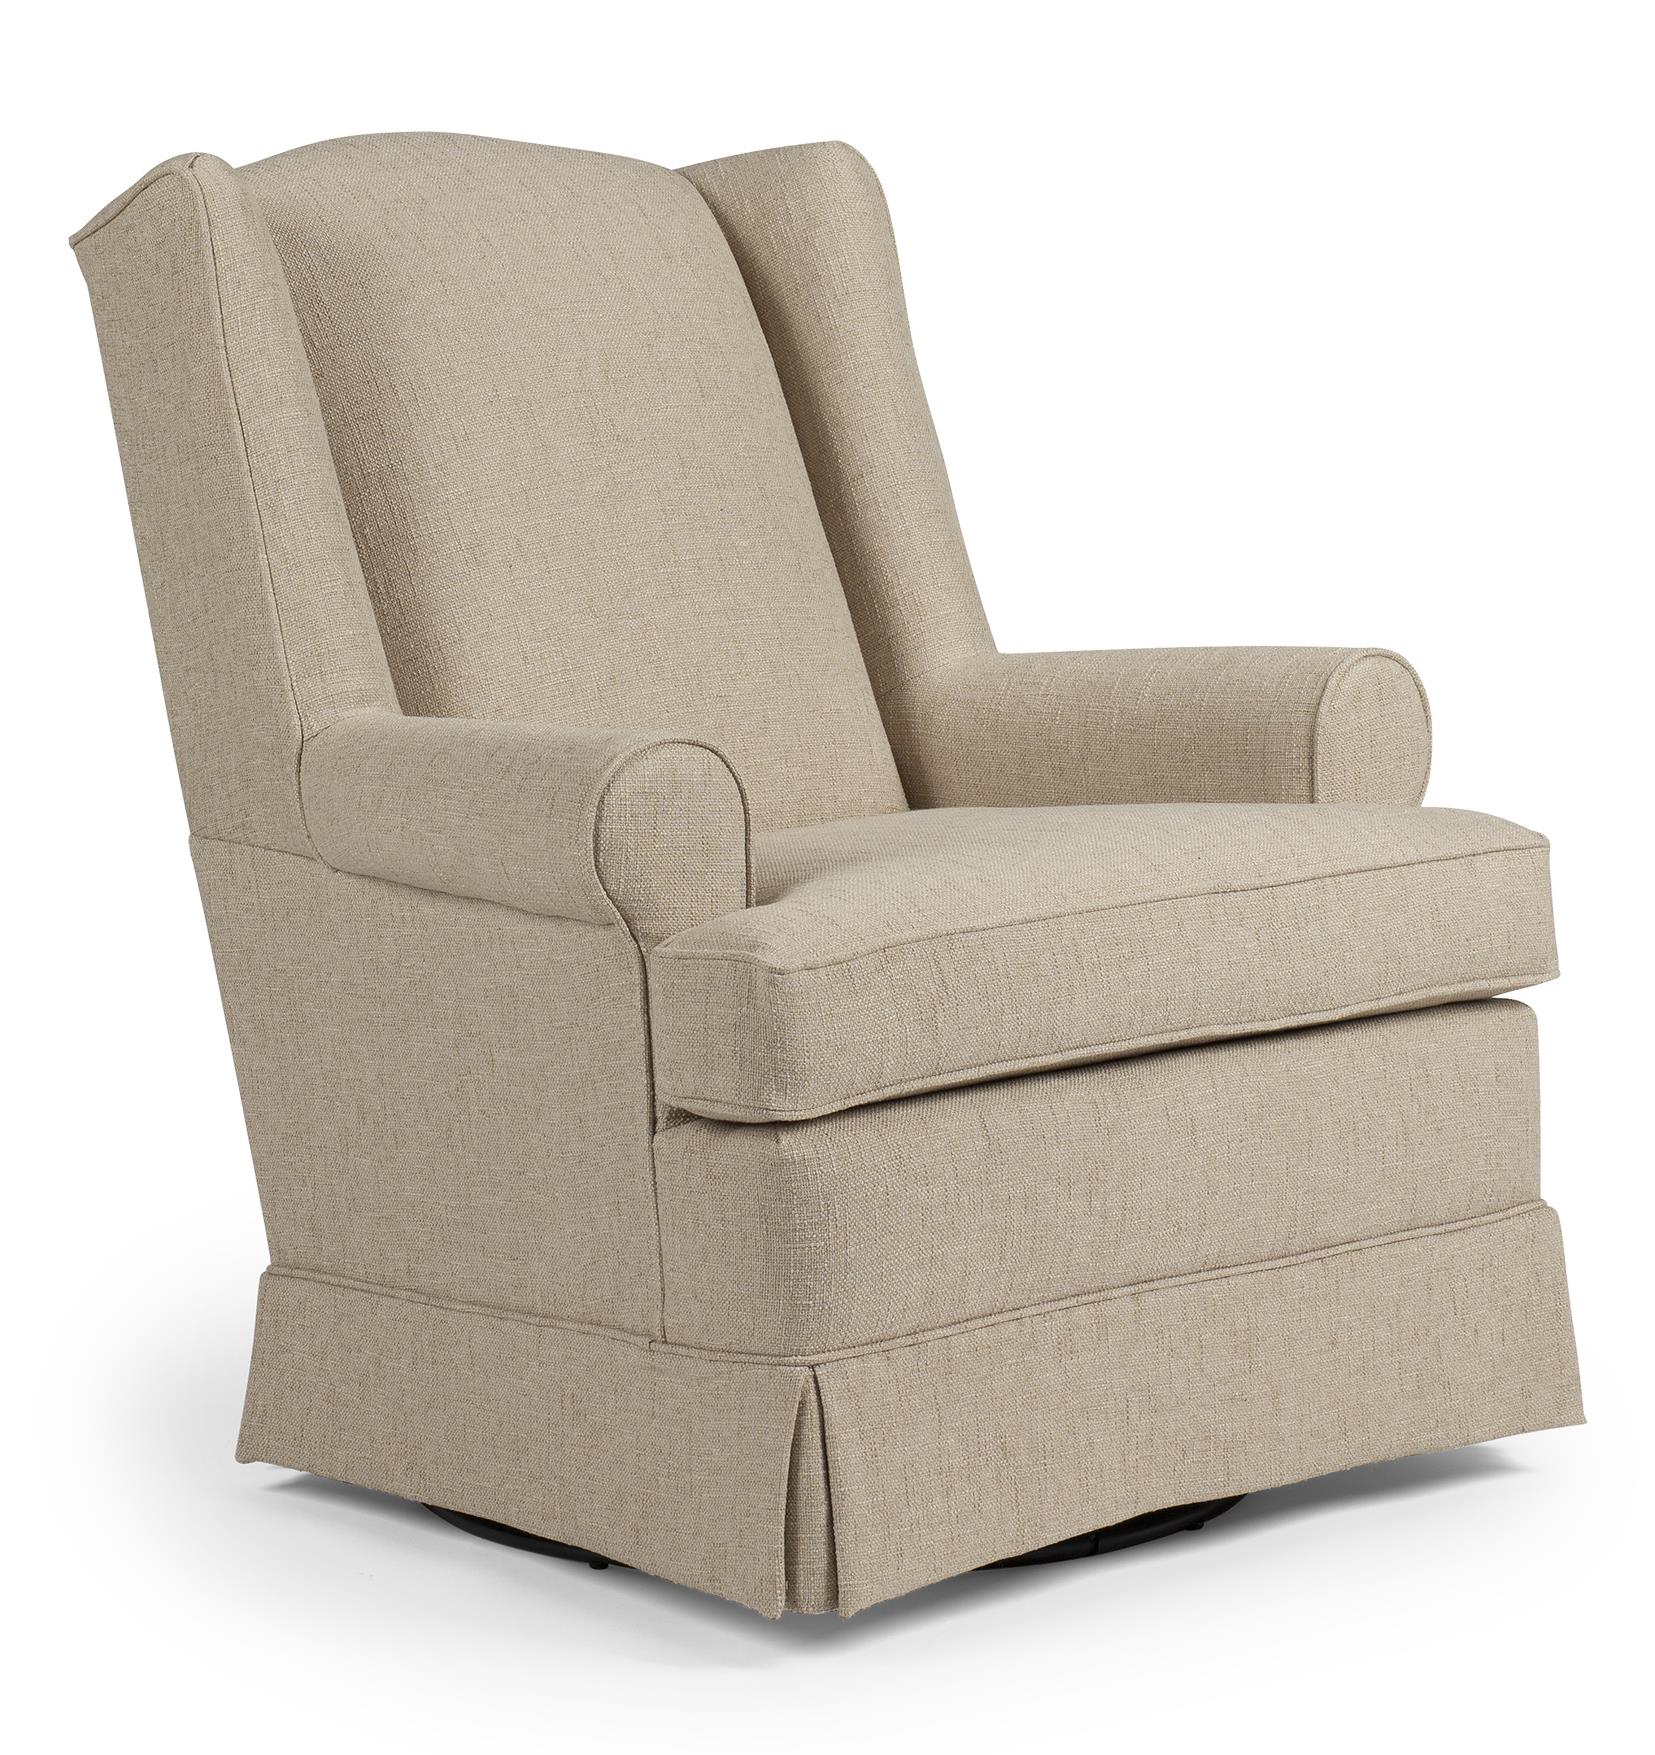 Glider Chairs Swivel Glider Chairs Living Room Furniture Taraba Home